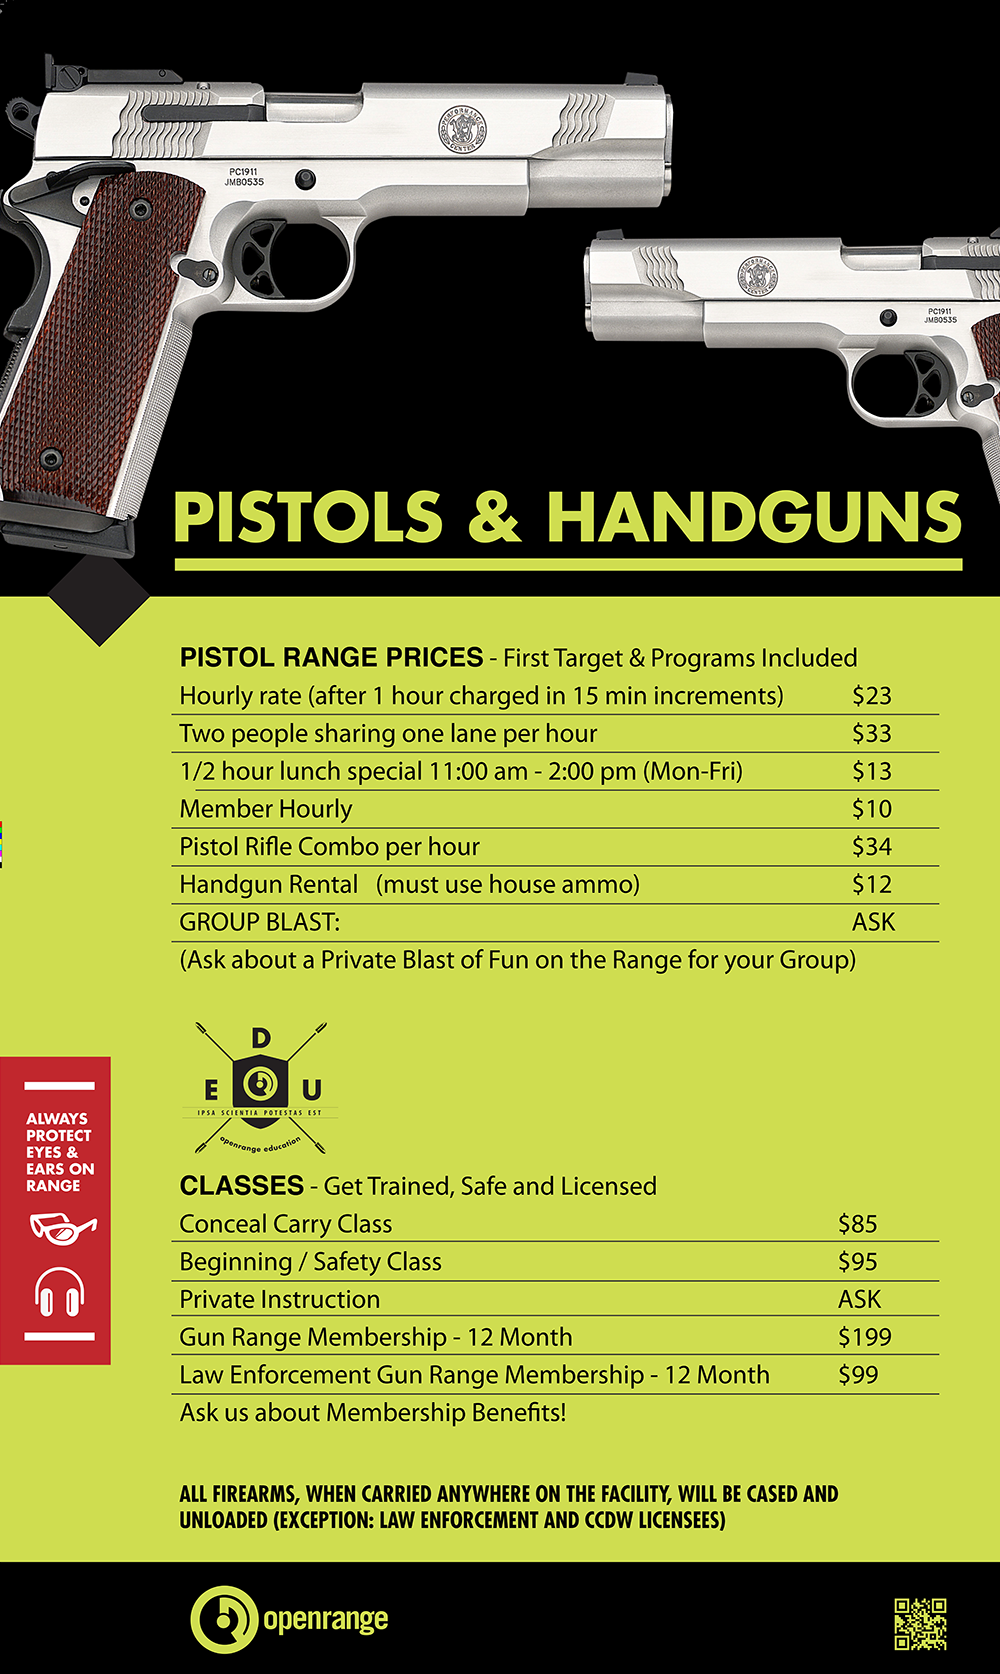 Pistol Range Hours and Rates at Openrange